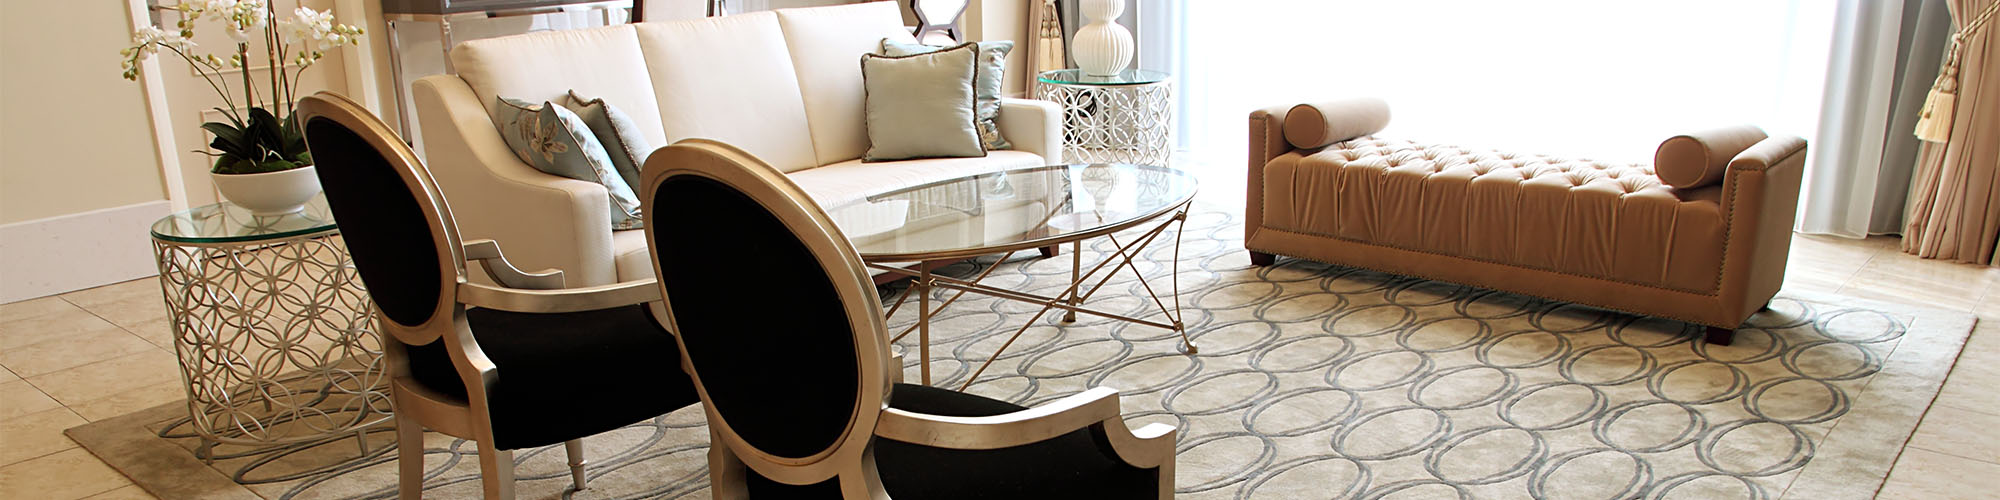 Area Rug In Cary Nc Receive A 25 Discount On Your Purchase